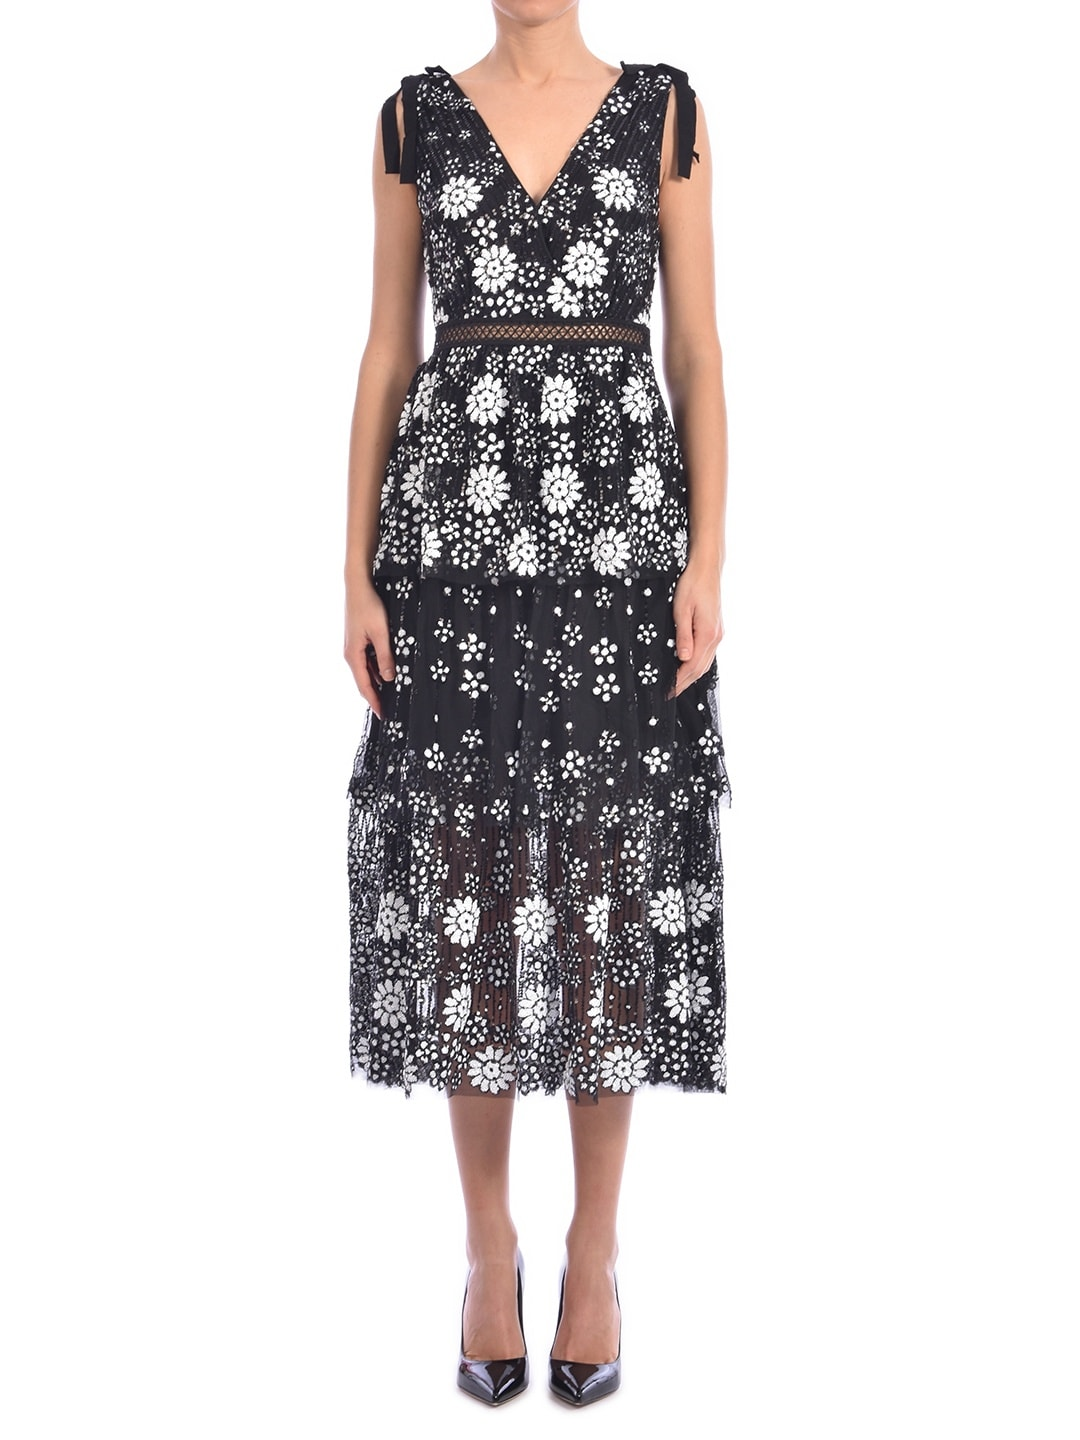 Buy self-portrait Floral Dress With Sequins online, shop self-portrait with free shipping